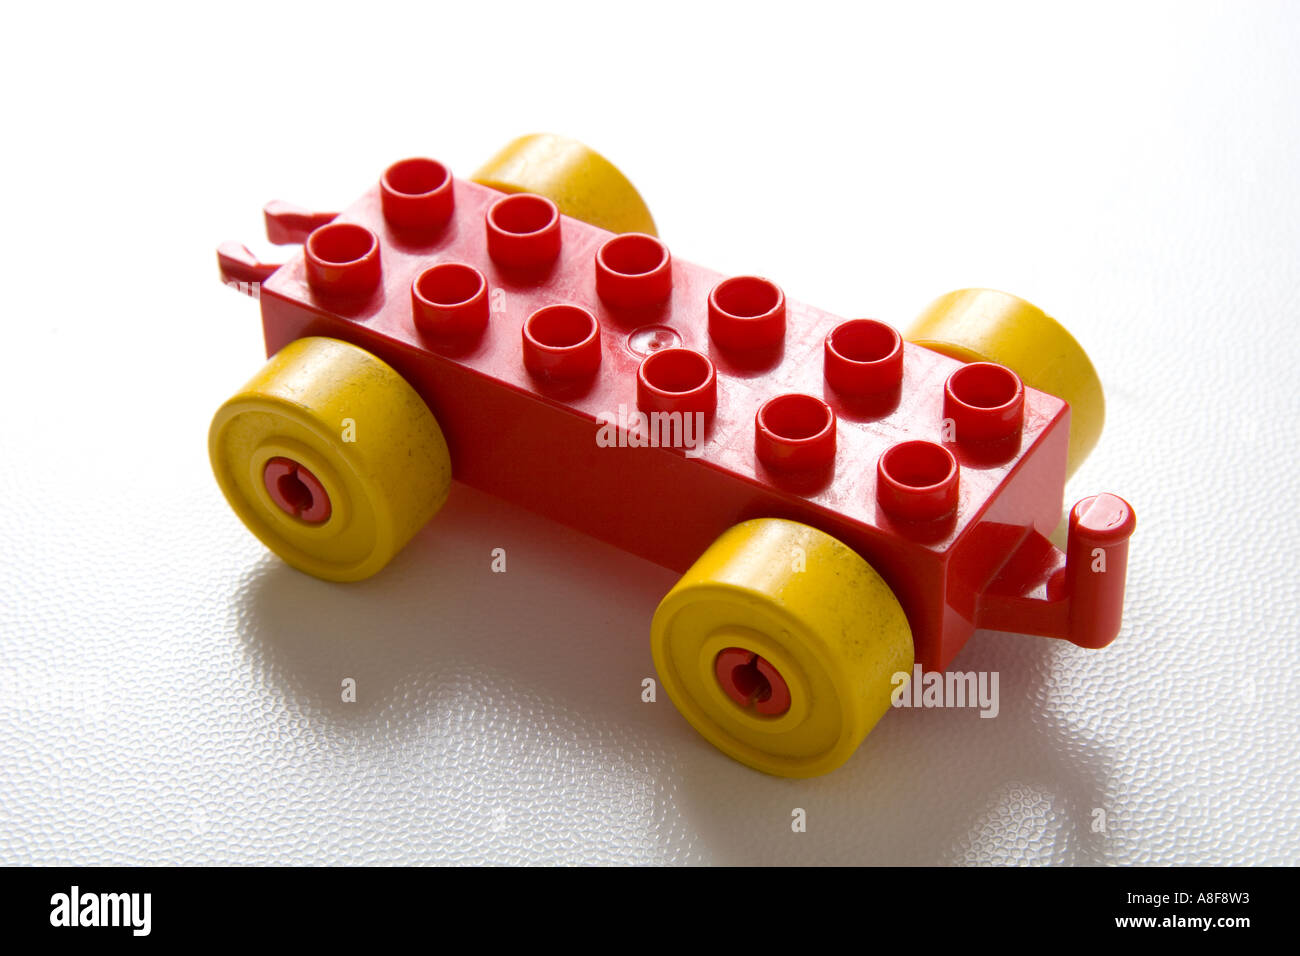 toy lego toy car wheels yellow red close up